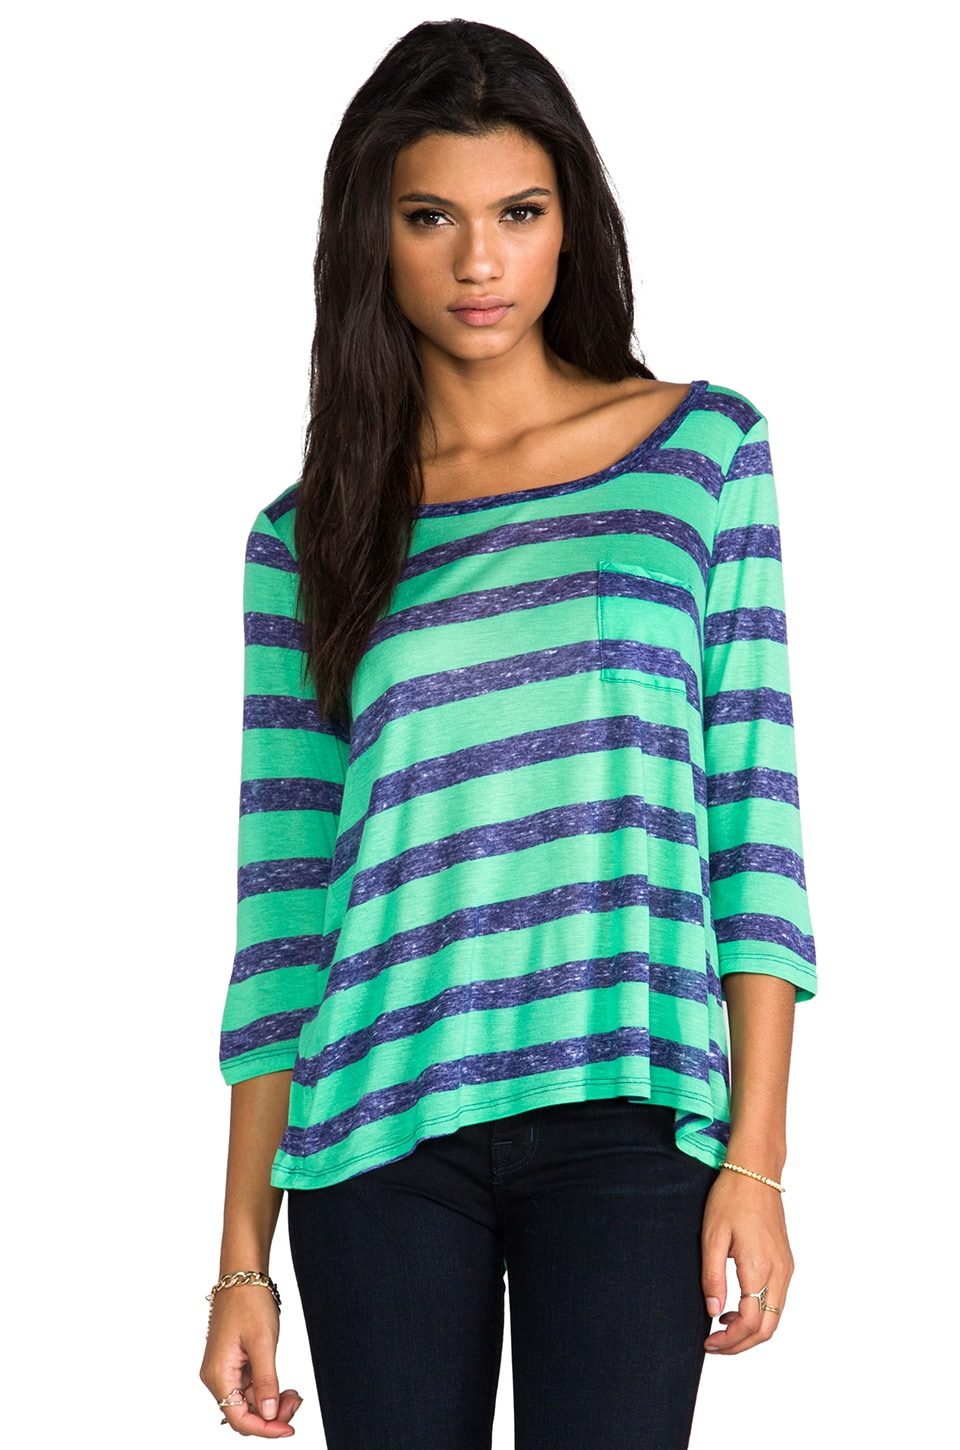 Splendid Venetian Heathered Stripe Top in Green/Navy